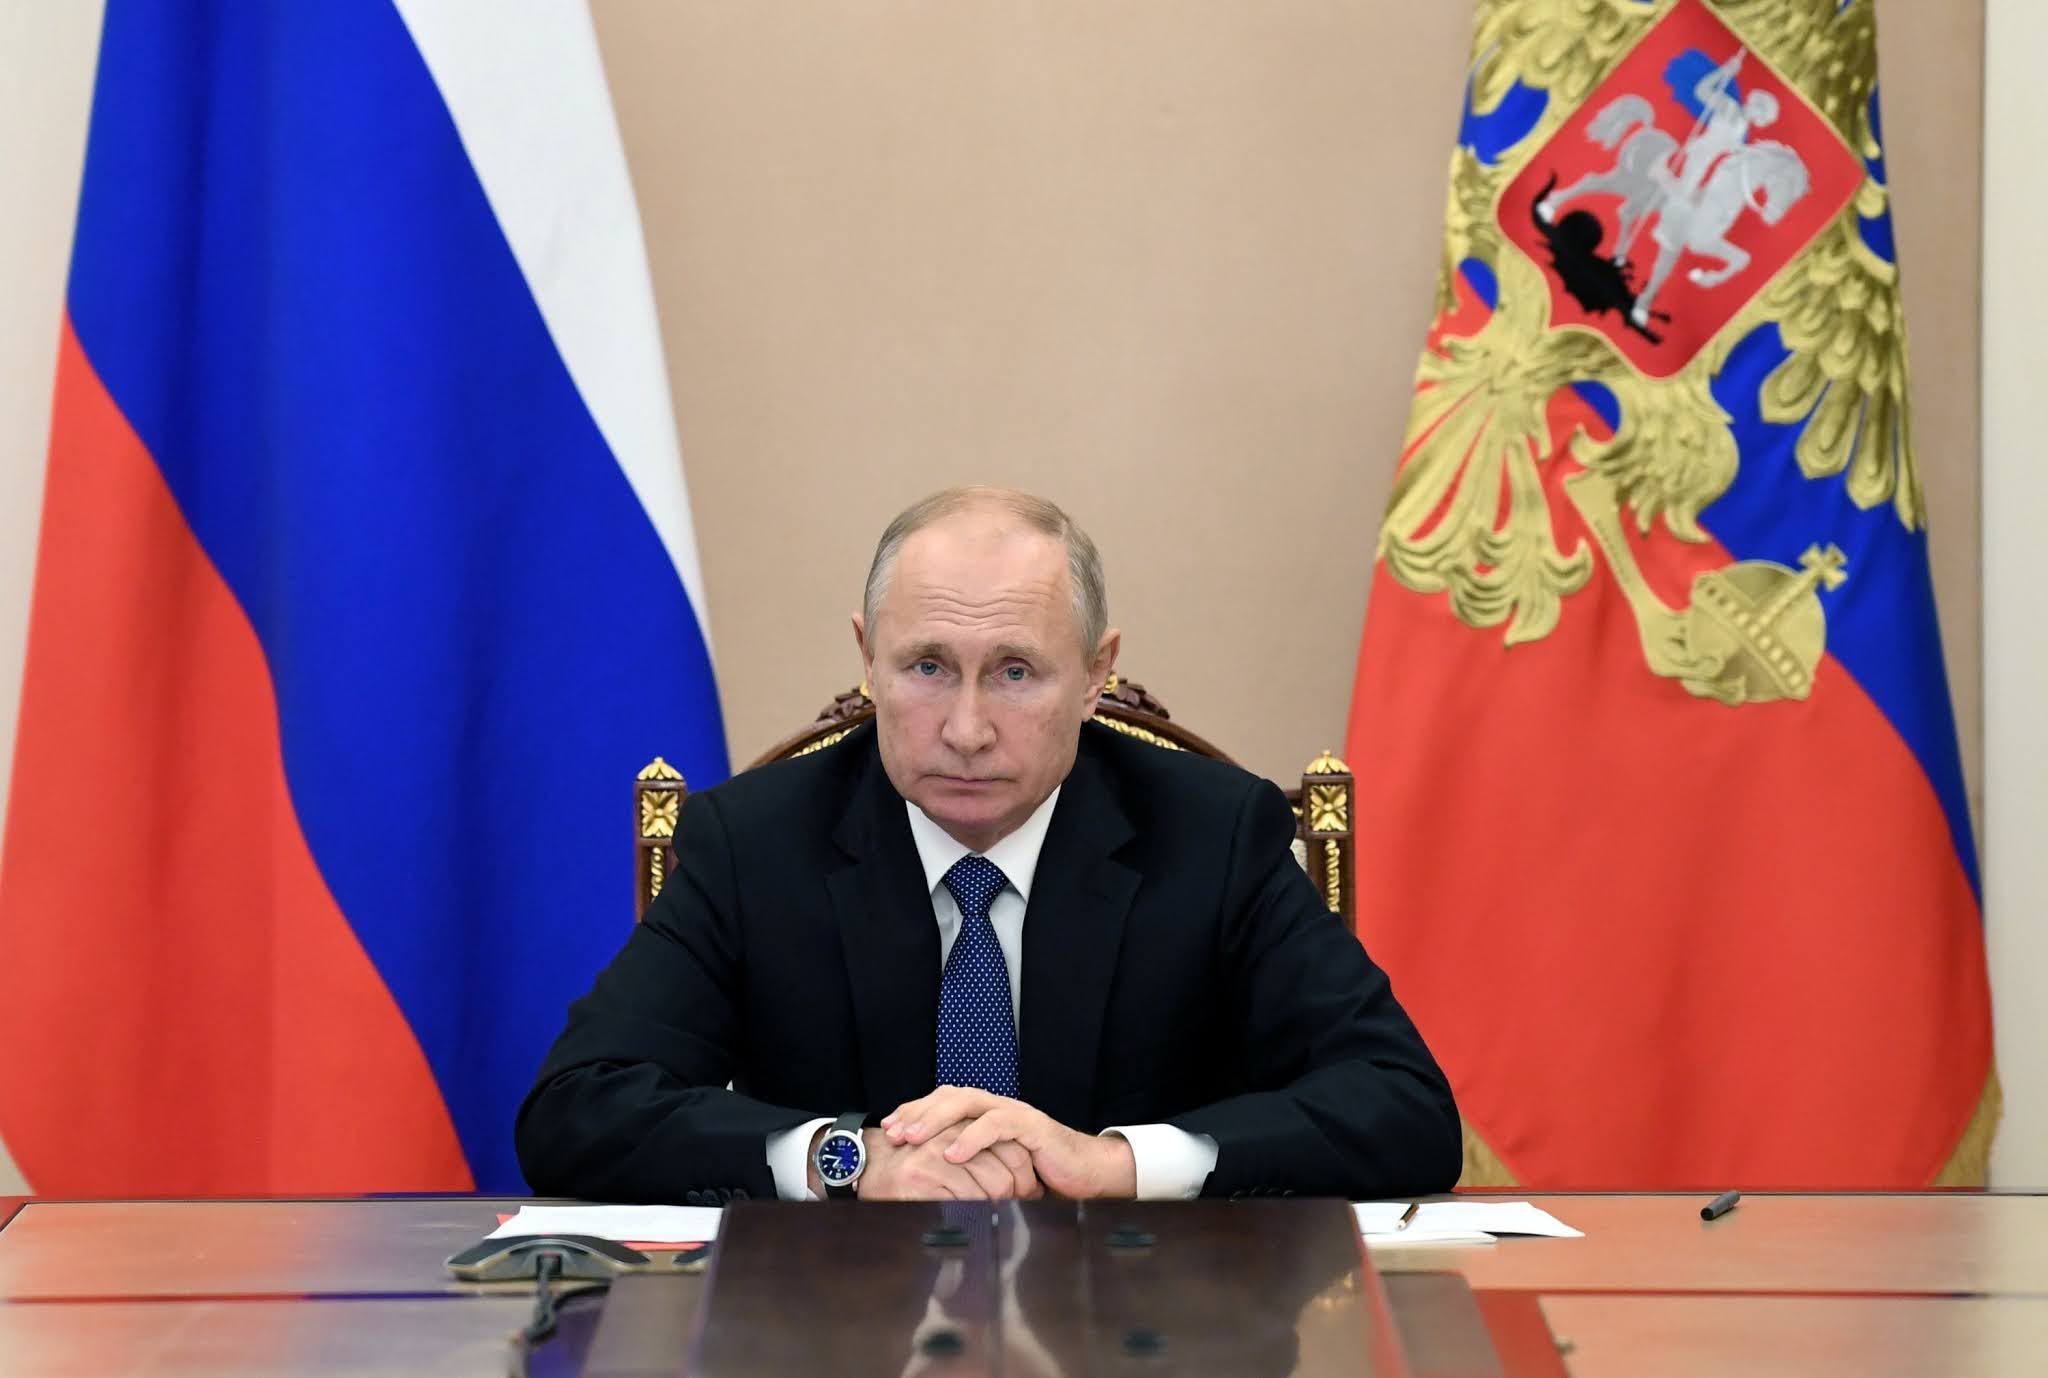 Putin Will Leave The Throne After 20 Years Daily Current Fairs